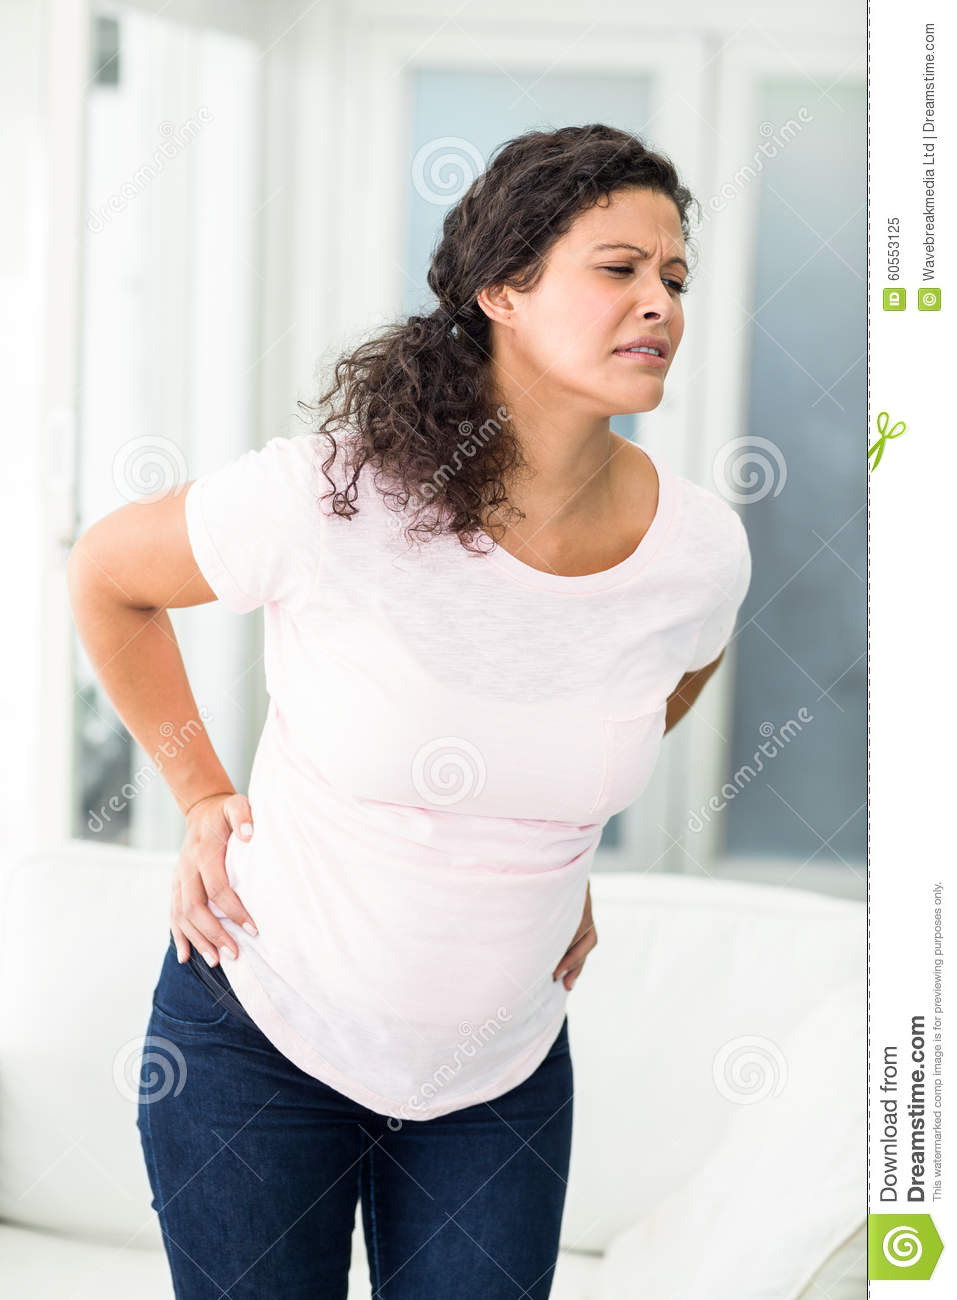 Pregnant woman frowning in back pain standing in living room.